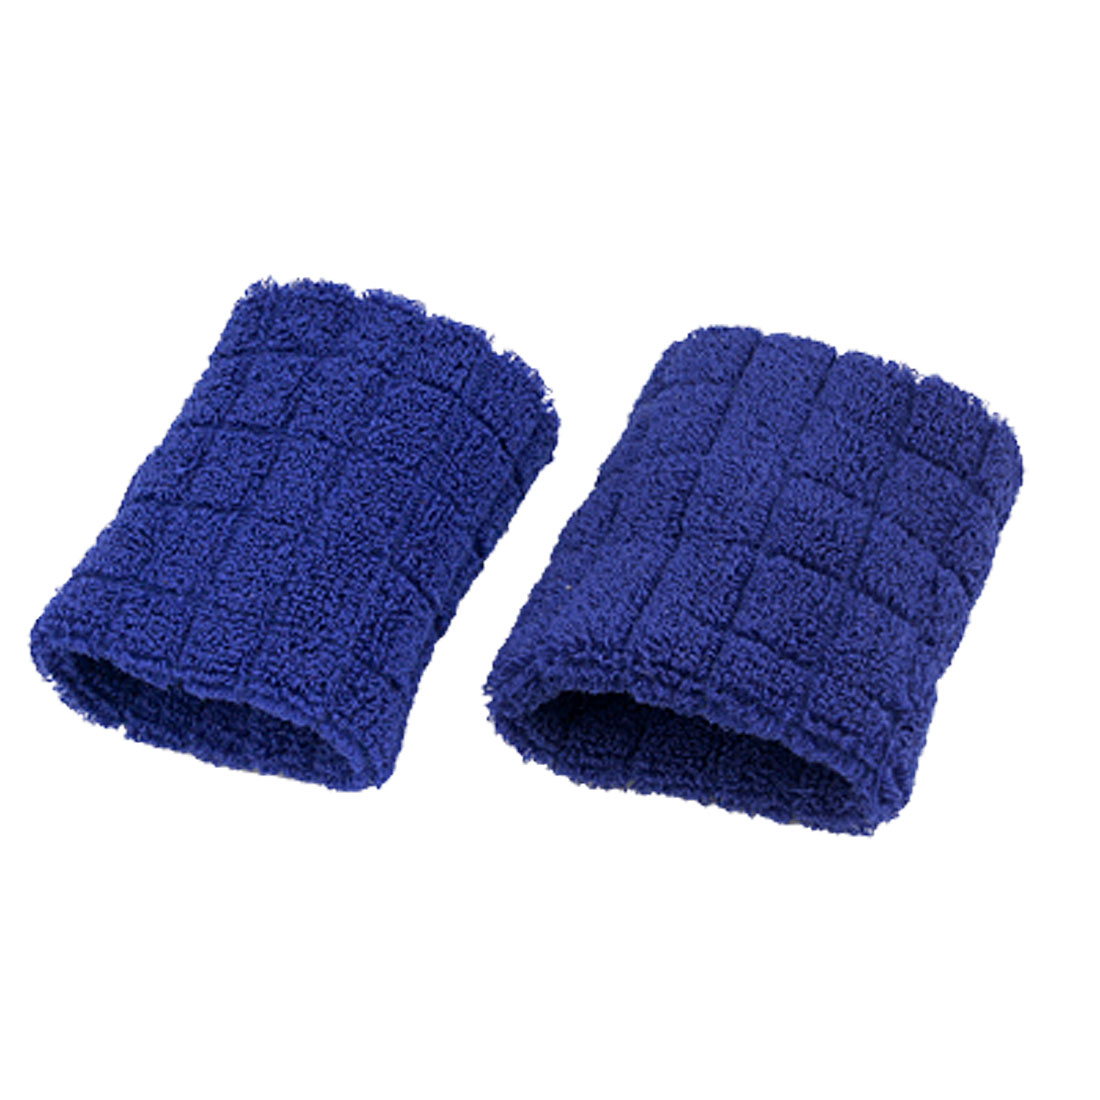 1 Pair Elastic Blue Plaid Pattern Terry Wrist Band Support